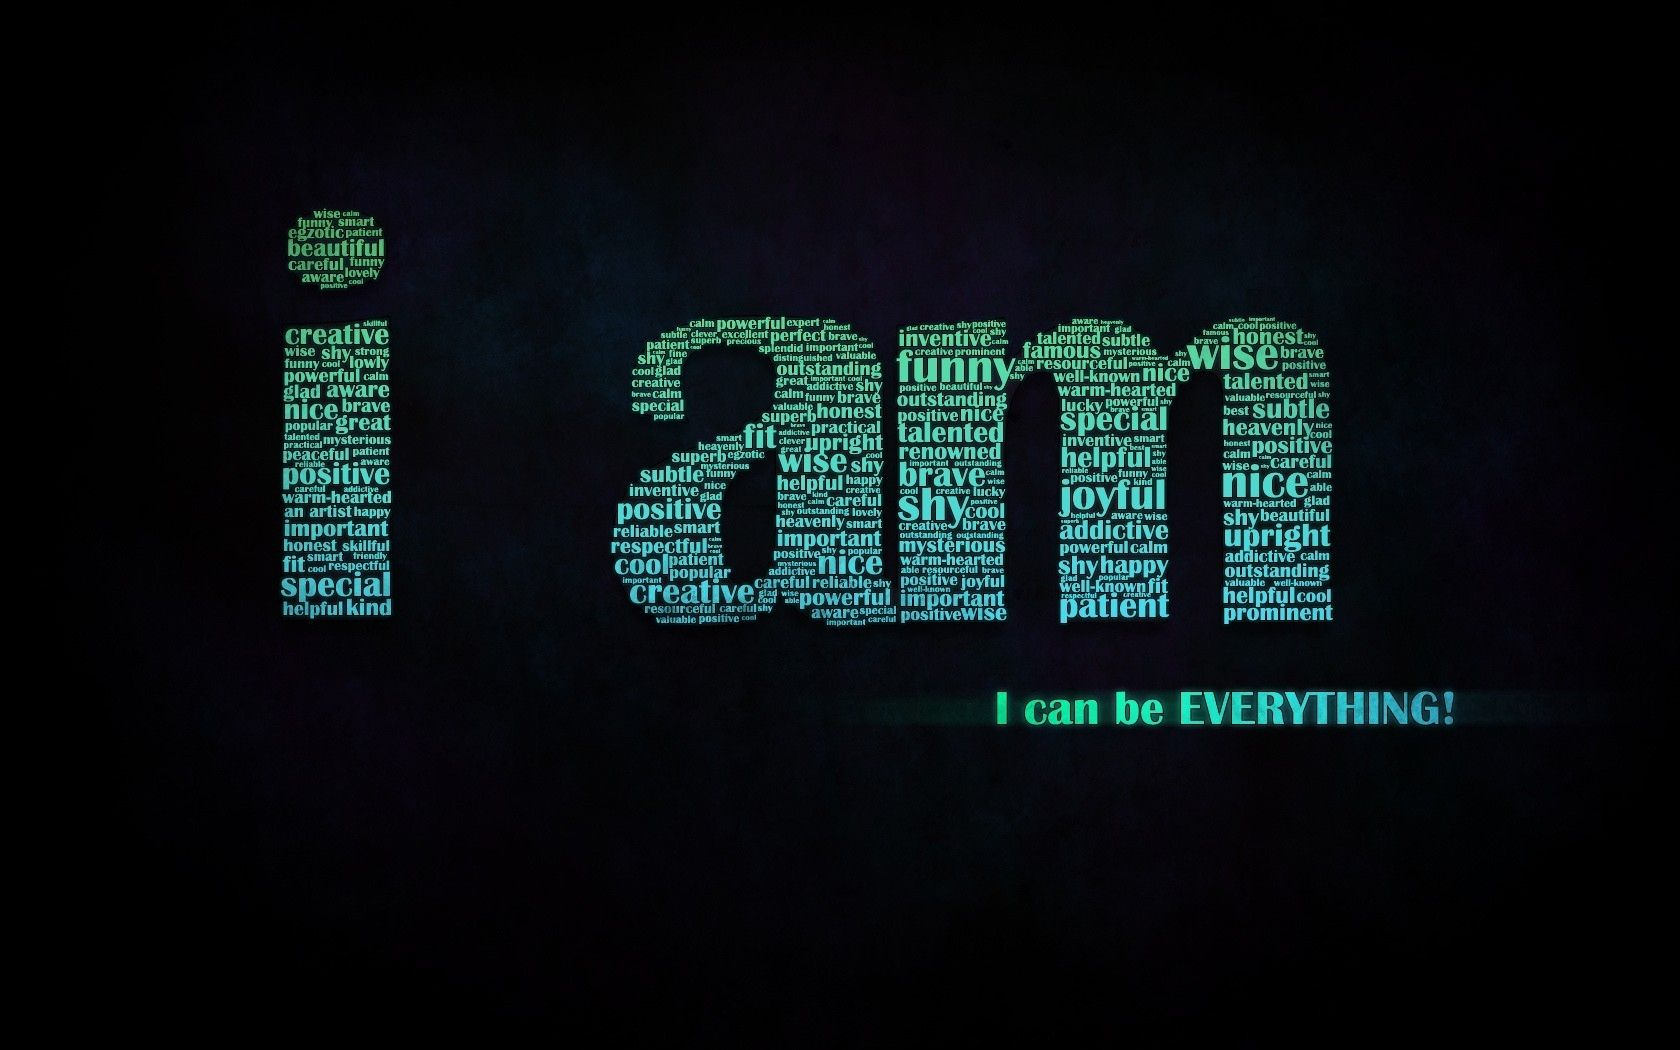 Define Yourself Inspirational Quotes Wallpapers Motivational Wallpaper Motivational Quotes Wallpaper